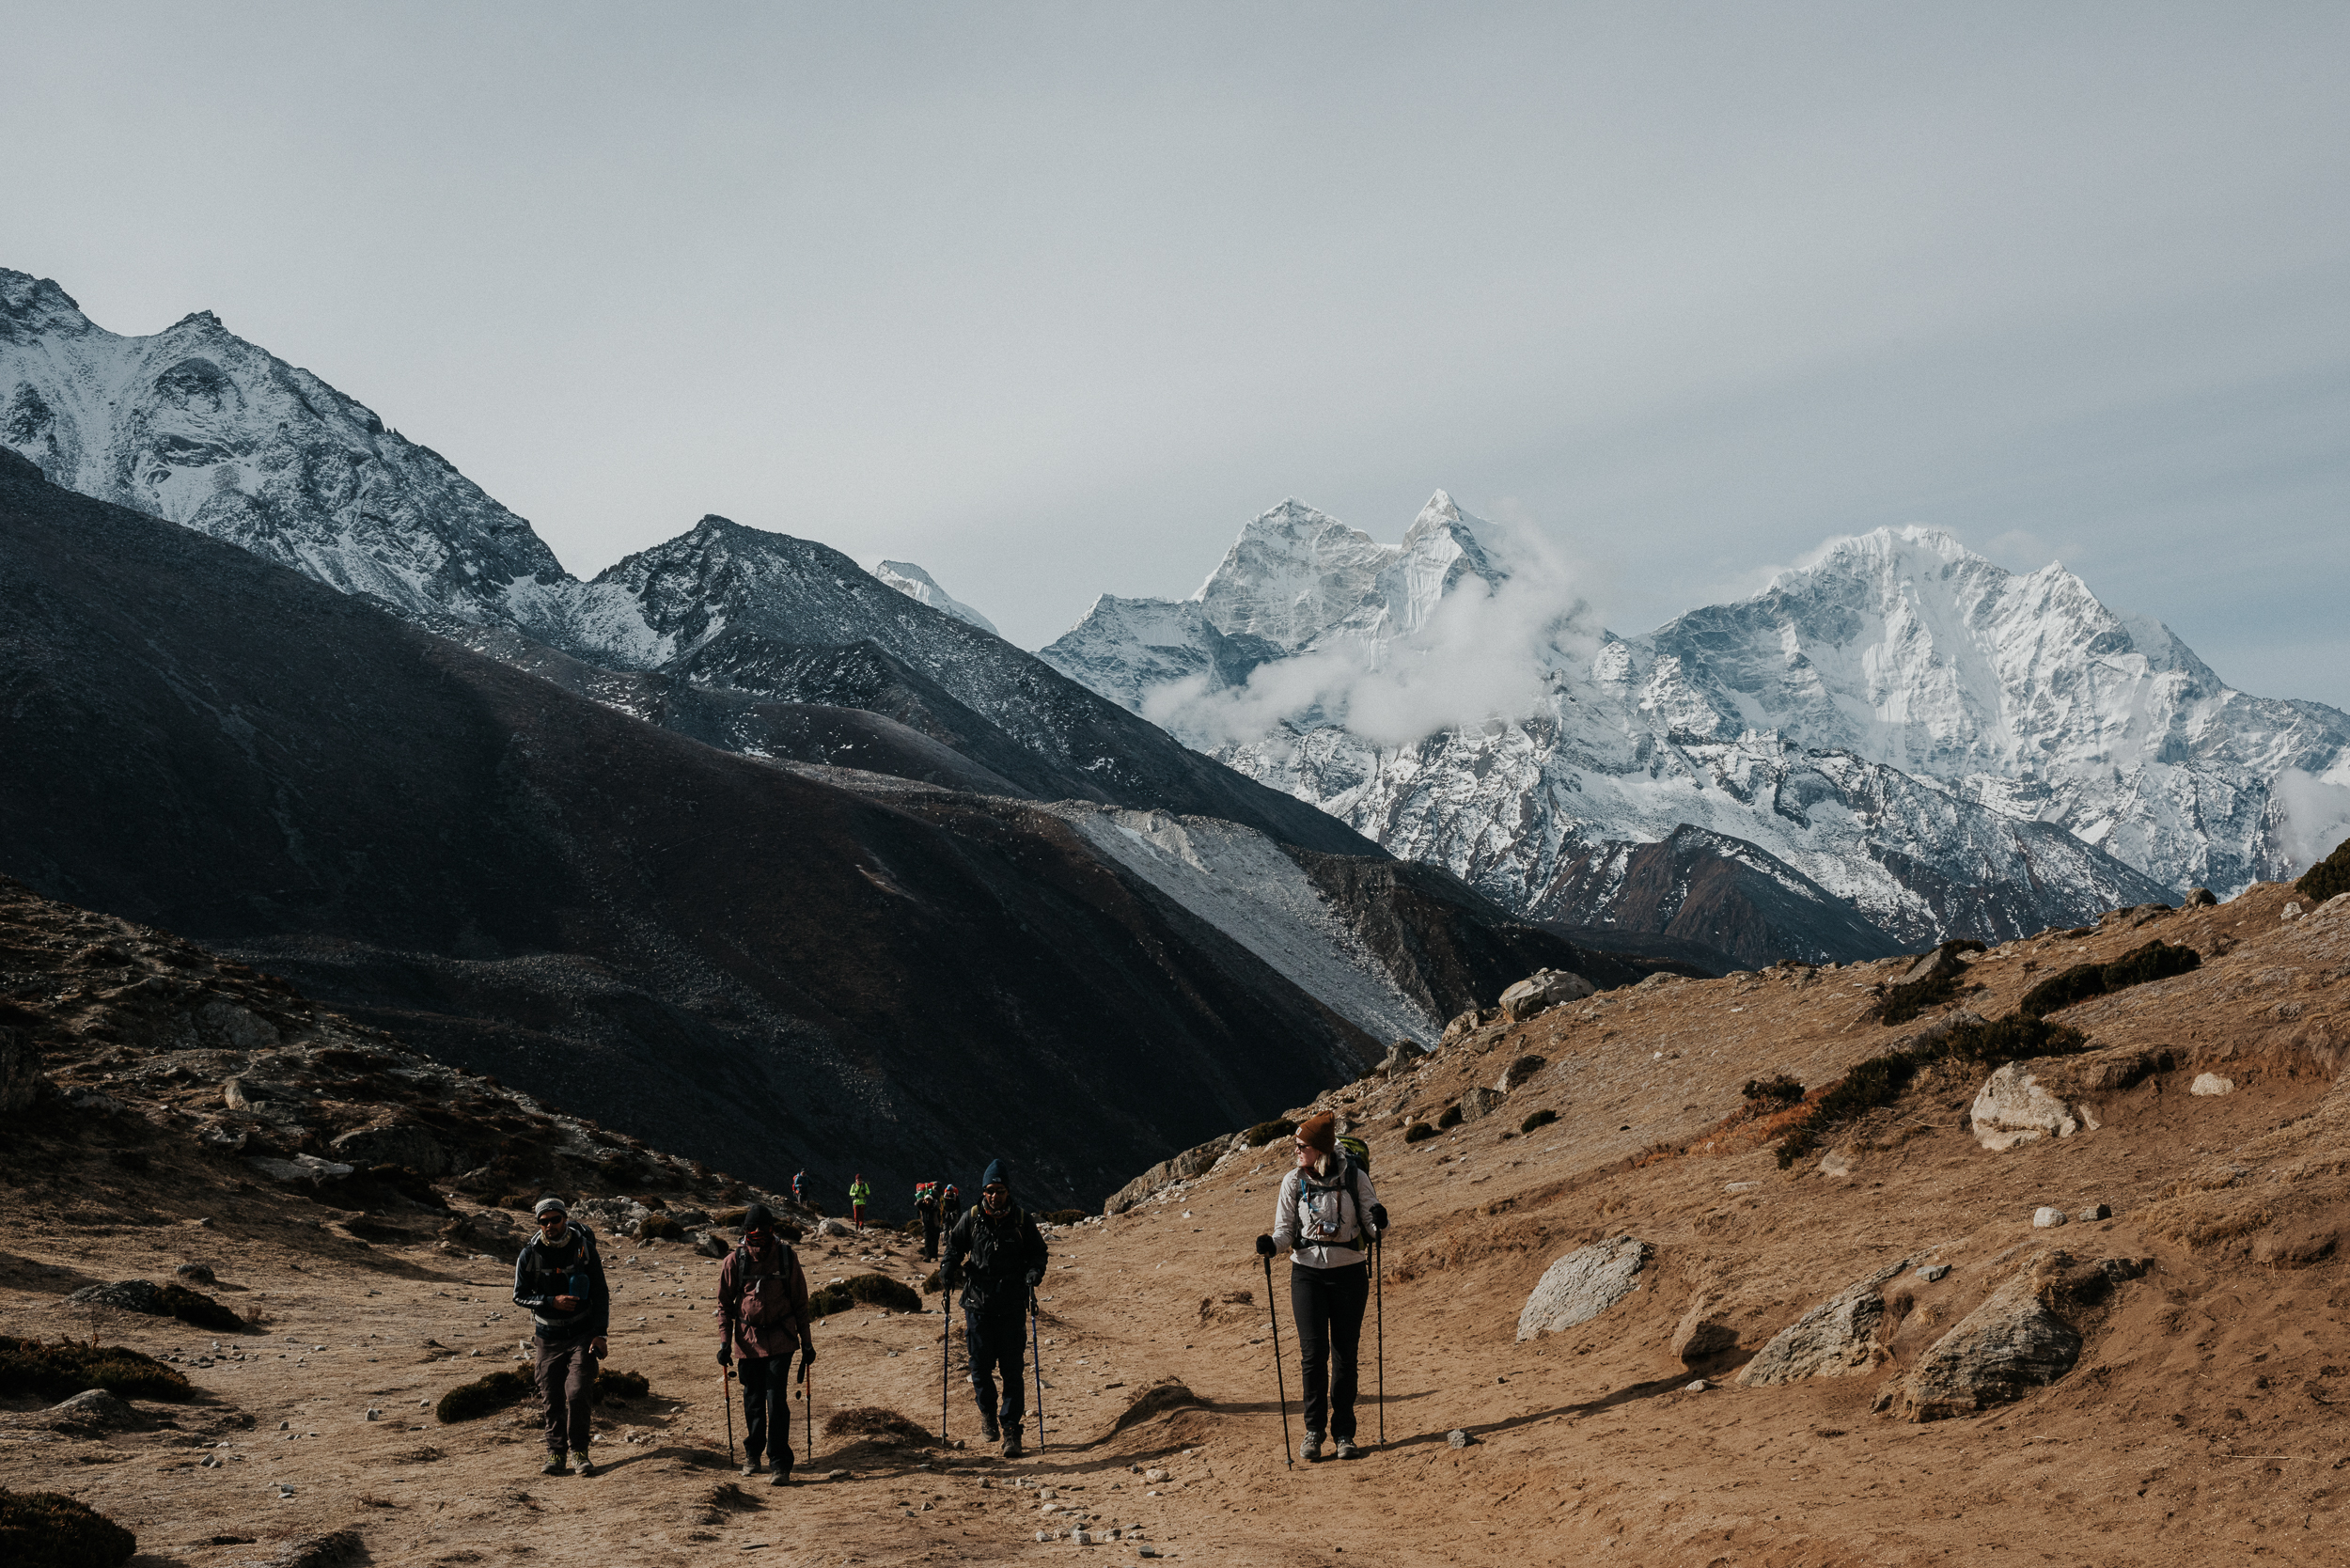 Nepal_EverestBaseCamp_2019_TaraShupe_Photography_DSC_4038.jpg